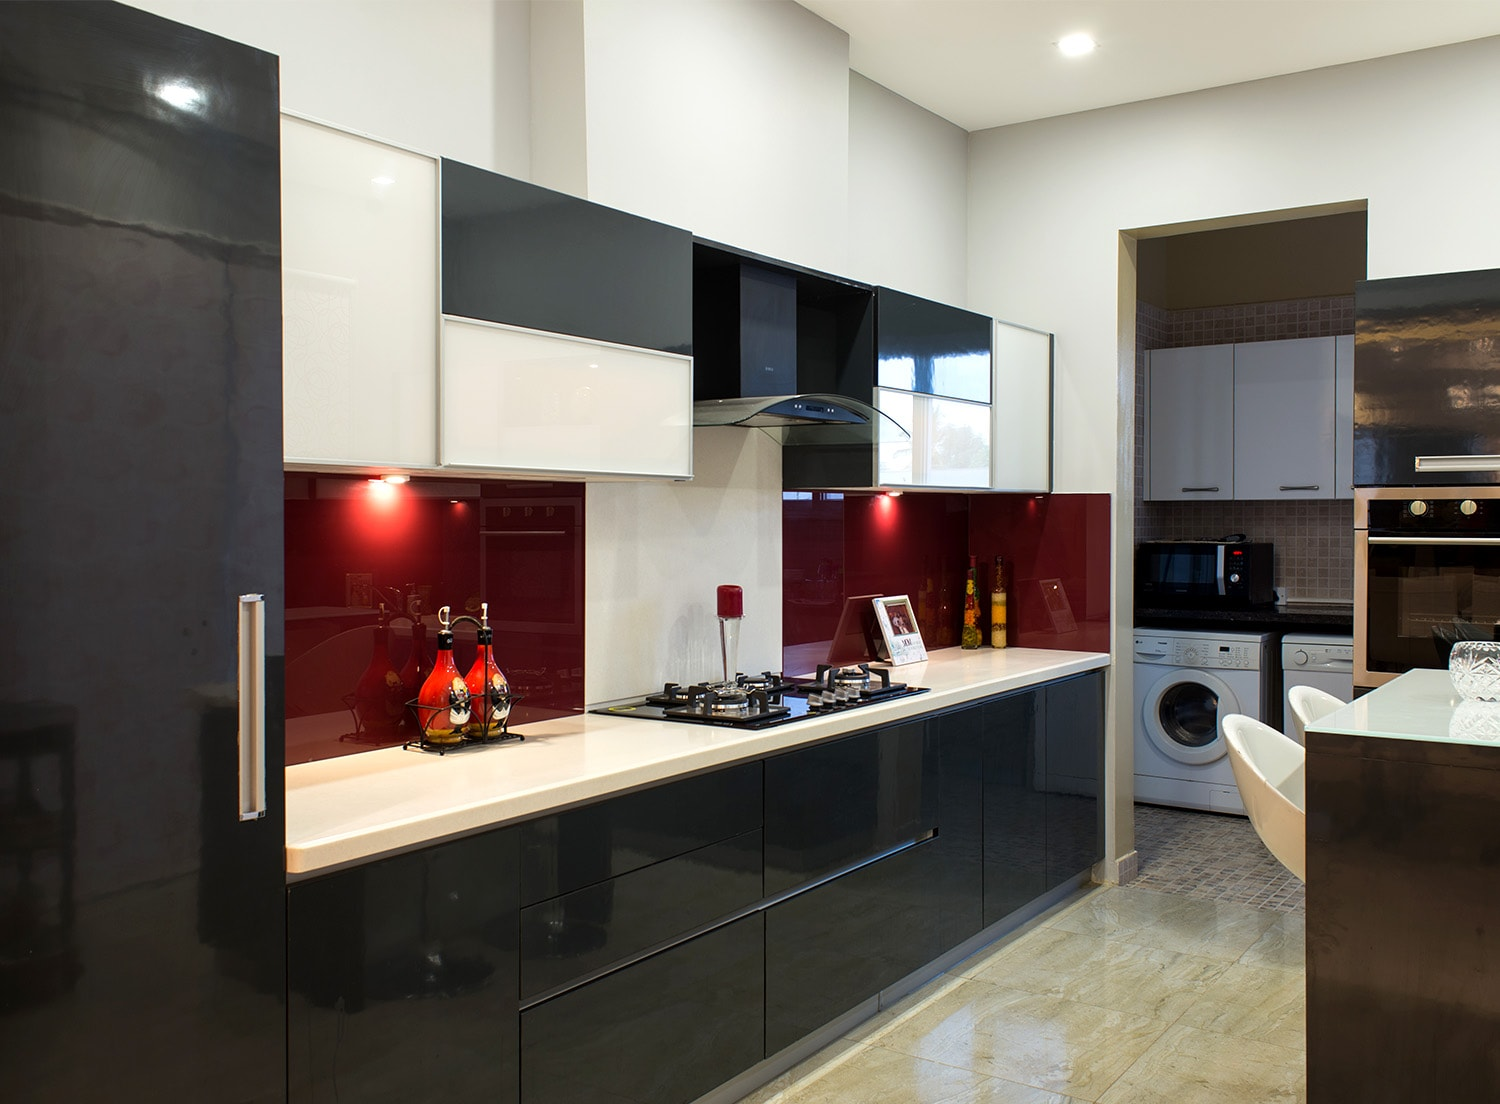 interior design kitchen bangalore home interiors by homelane modular kitchens wardrobes 981